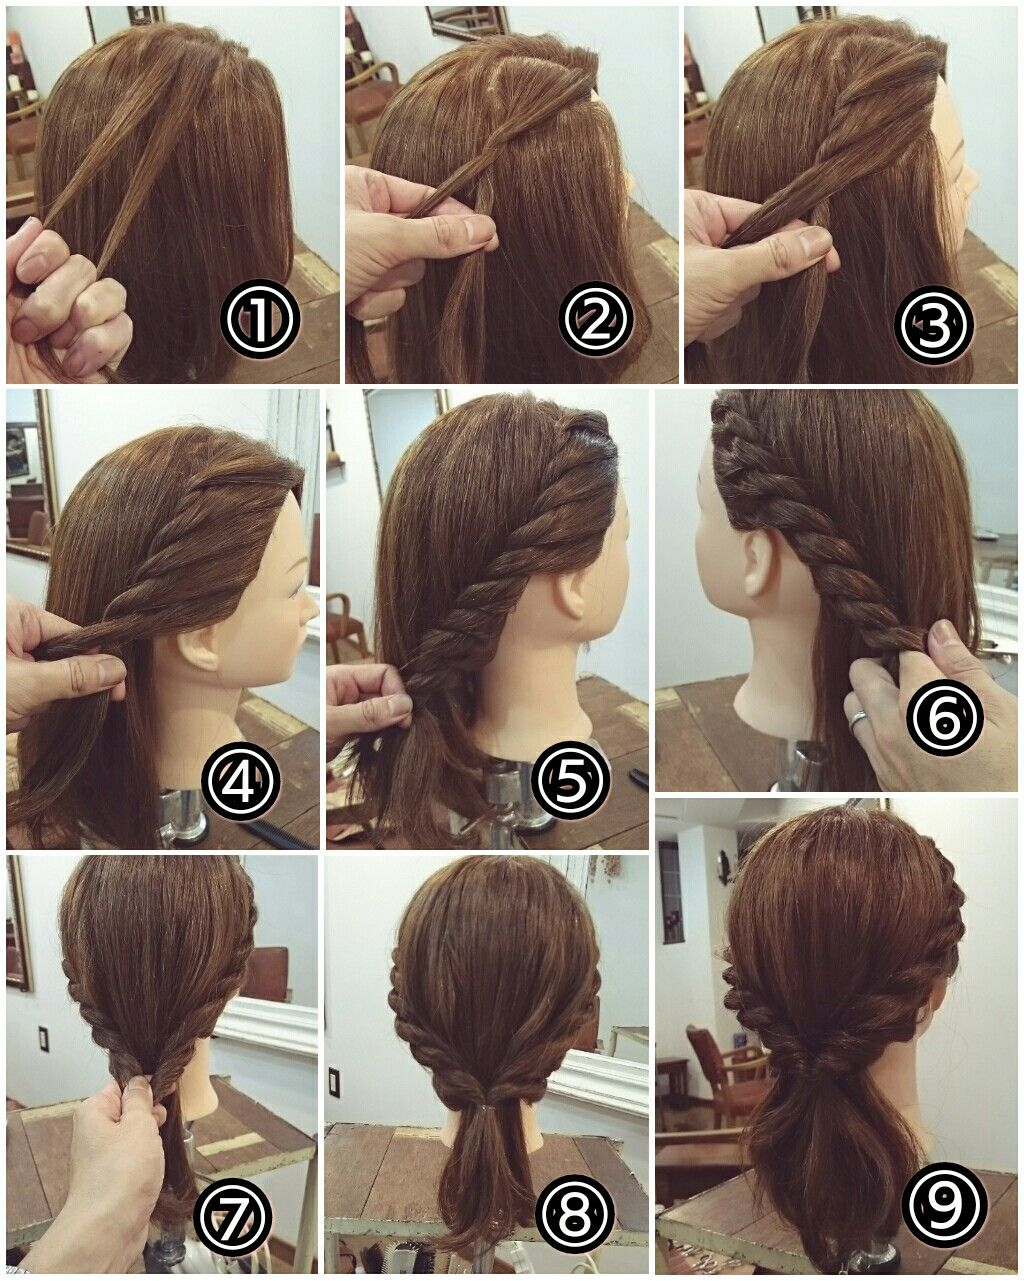 Luv it hair pinterest hair style easy hairstyles and makeup